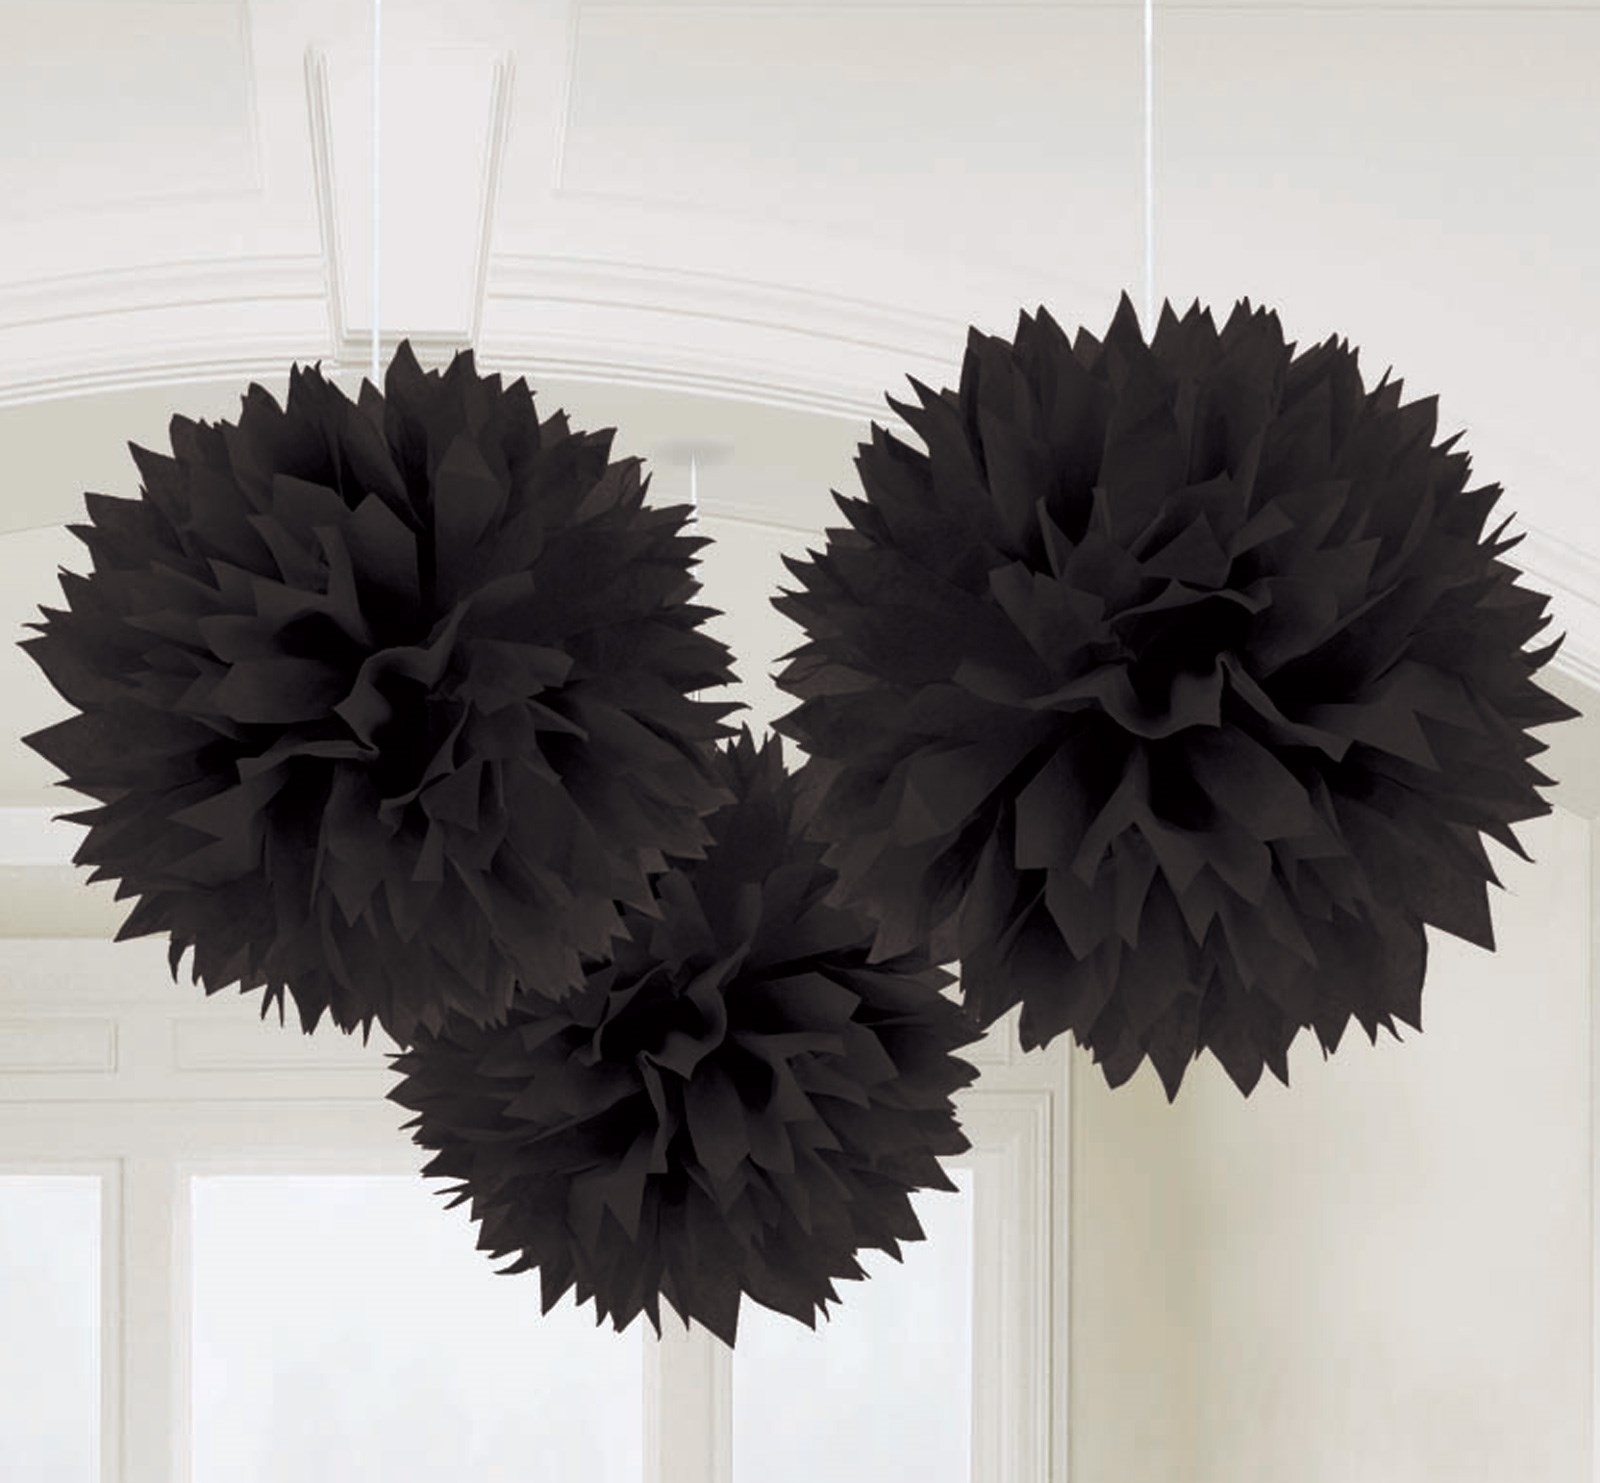 Black Fluffy Decorations (3)